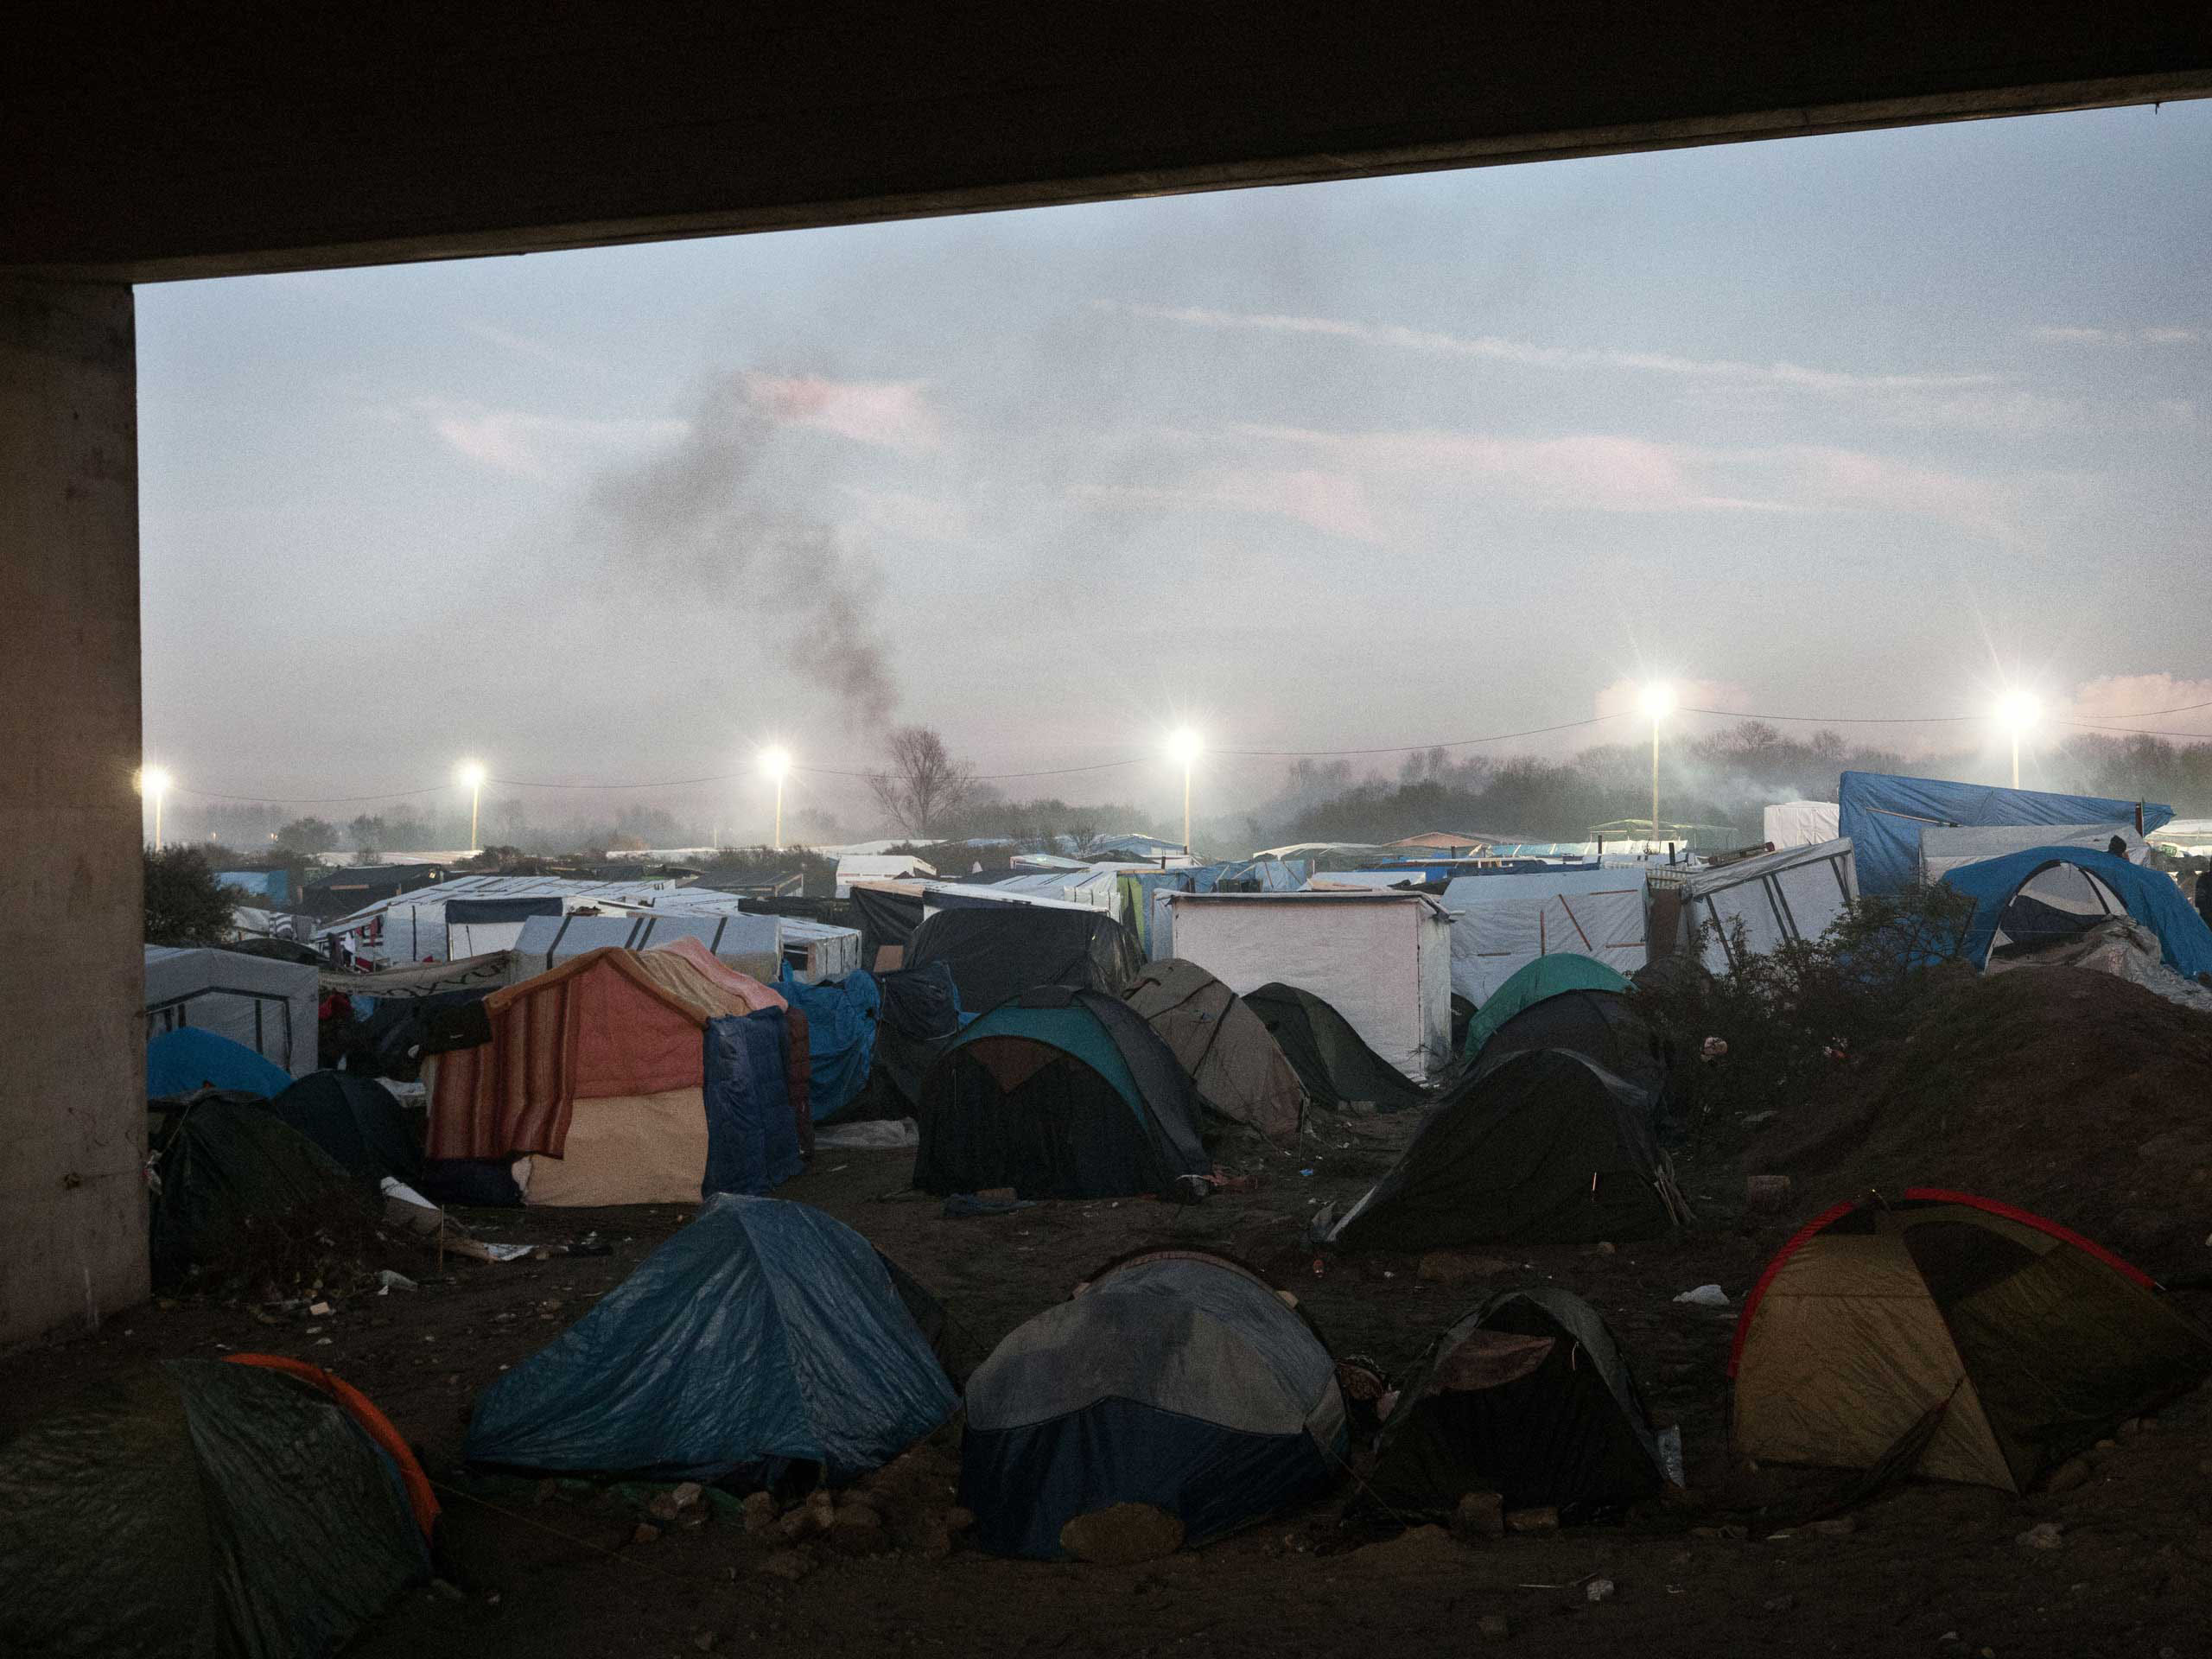 The tents that make the shantytown known as the 'jungle' of Calais, France, where a mix of refugees, asylum seekers and economic migrants from Darfur, Afghanistan, Syria, Iraq, Eritrea live before they attempt to enter the United Kingdom by stowing away on ferries, cars, or trains traveling through the Port of Calais or the Eurotunnel, Nov. 26, 2015.